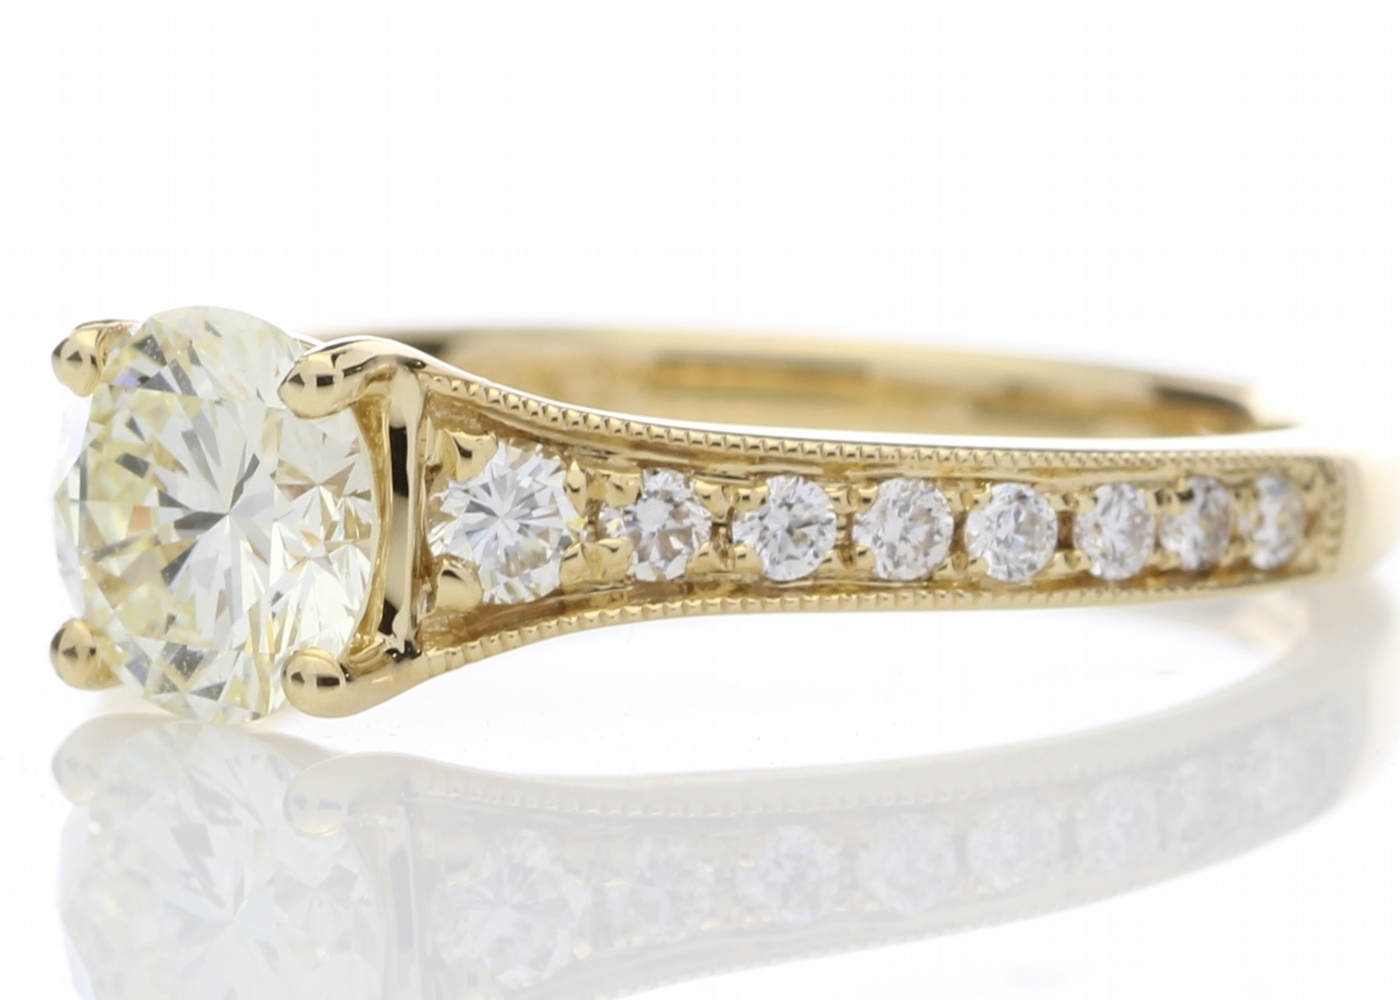 18ct Yellow Gold Diamond Ring With Stone Set Shoulders 1.06 Carats - Image 2 of 5